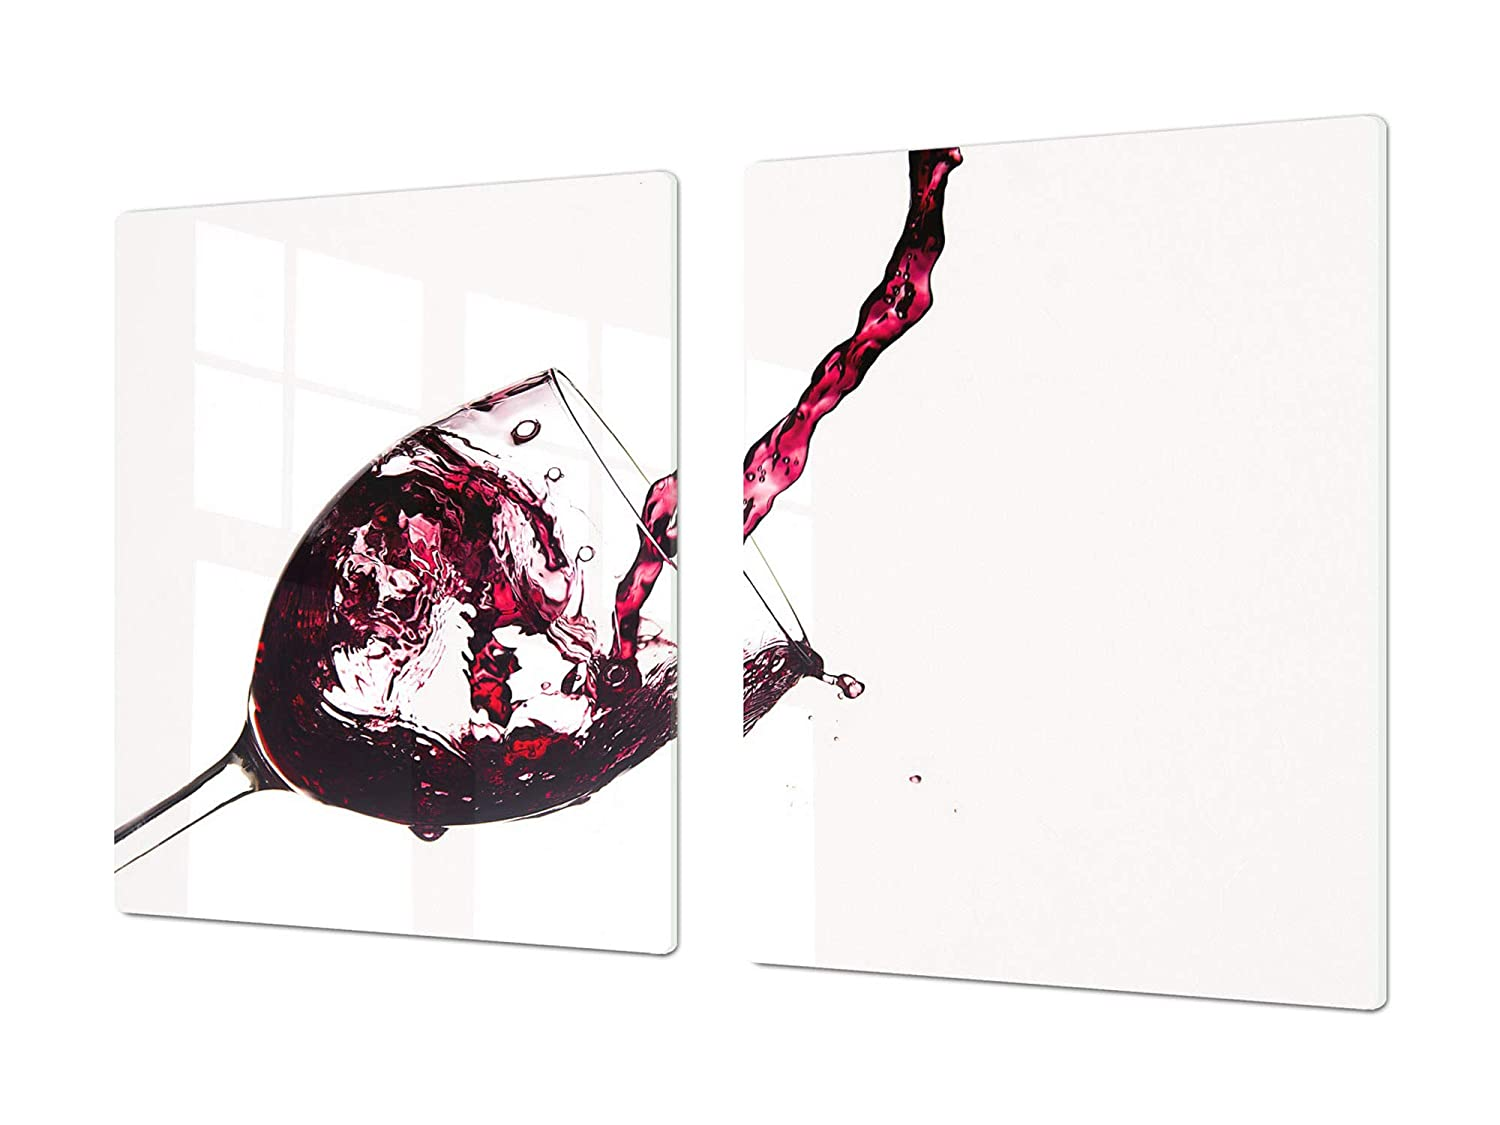 Red wine 3 2x40x52 Big Kitchen Board & Induction Cooktop Cover – Glass Pastry Board – Heat and Bacteria Resistant;Single  80 x 52 cm (31,5  x 20,47 ); Double  40 x 52 cm (15,75  x 20,47 ); Wine Series DD04